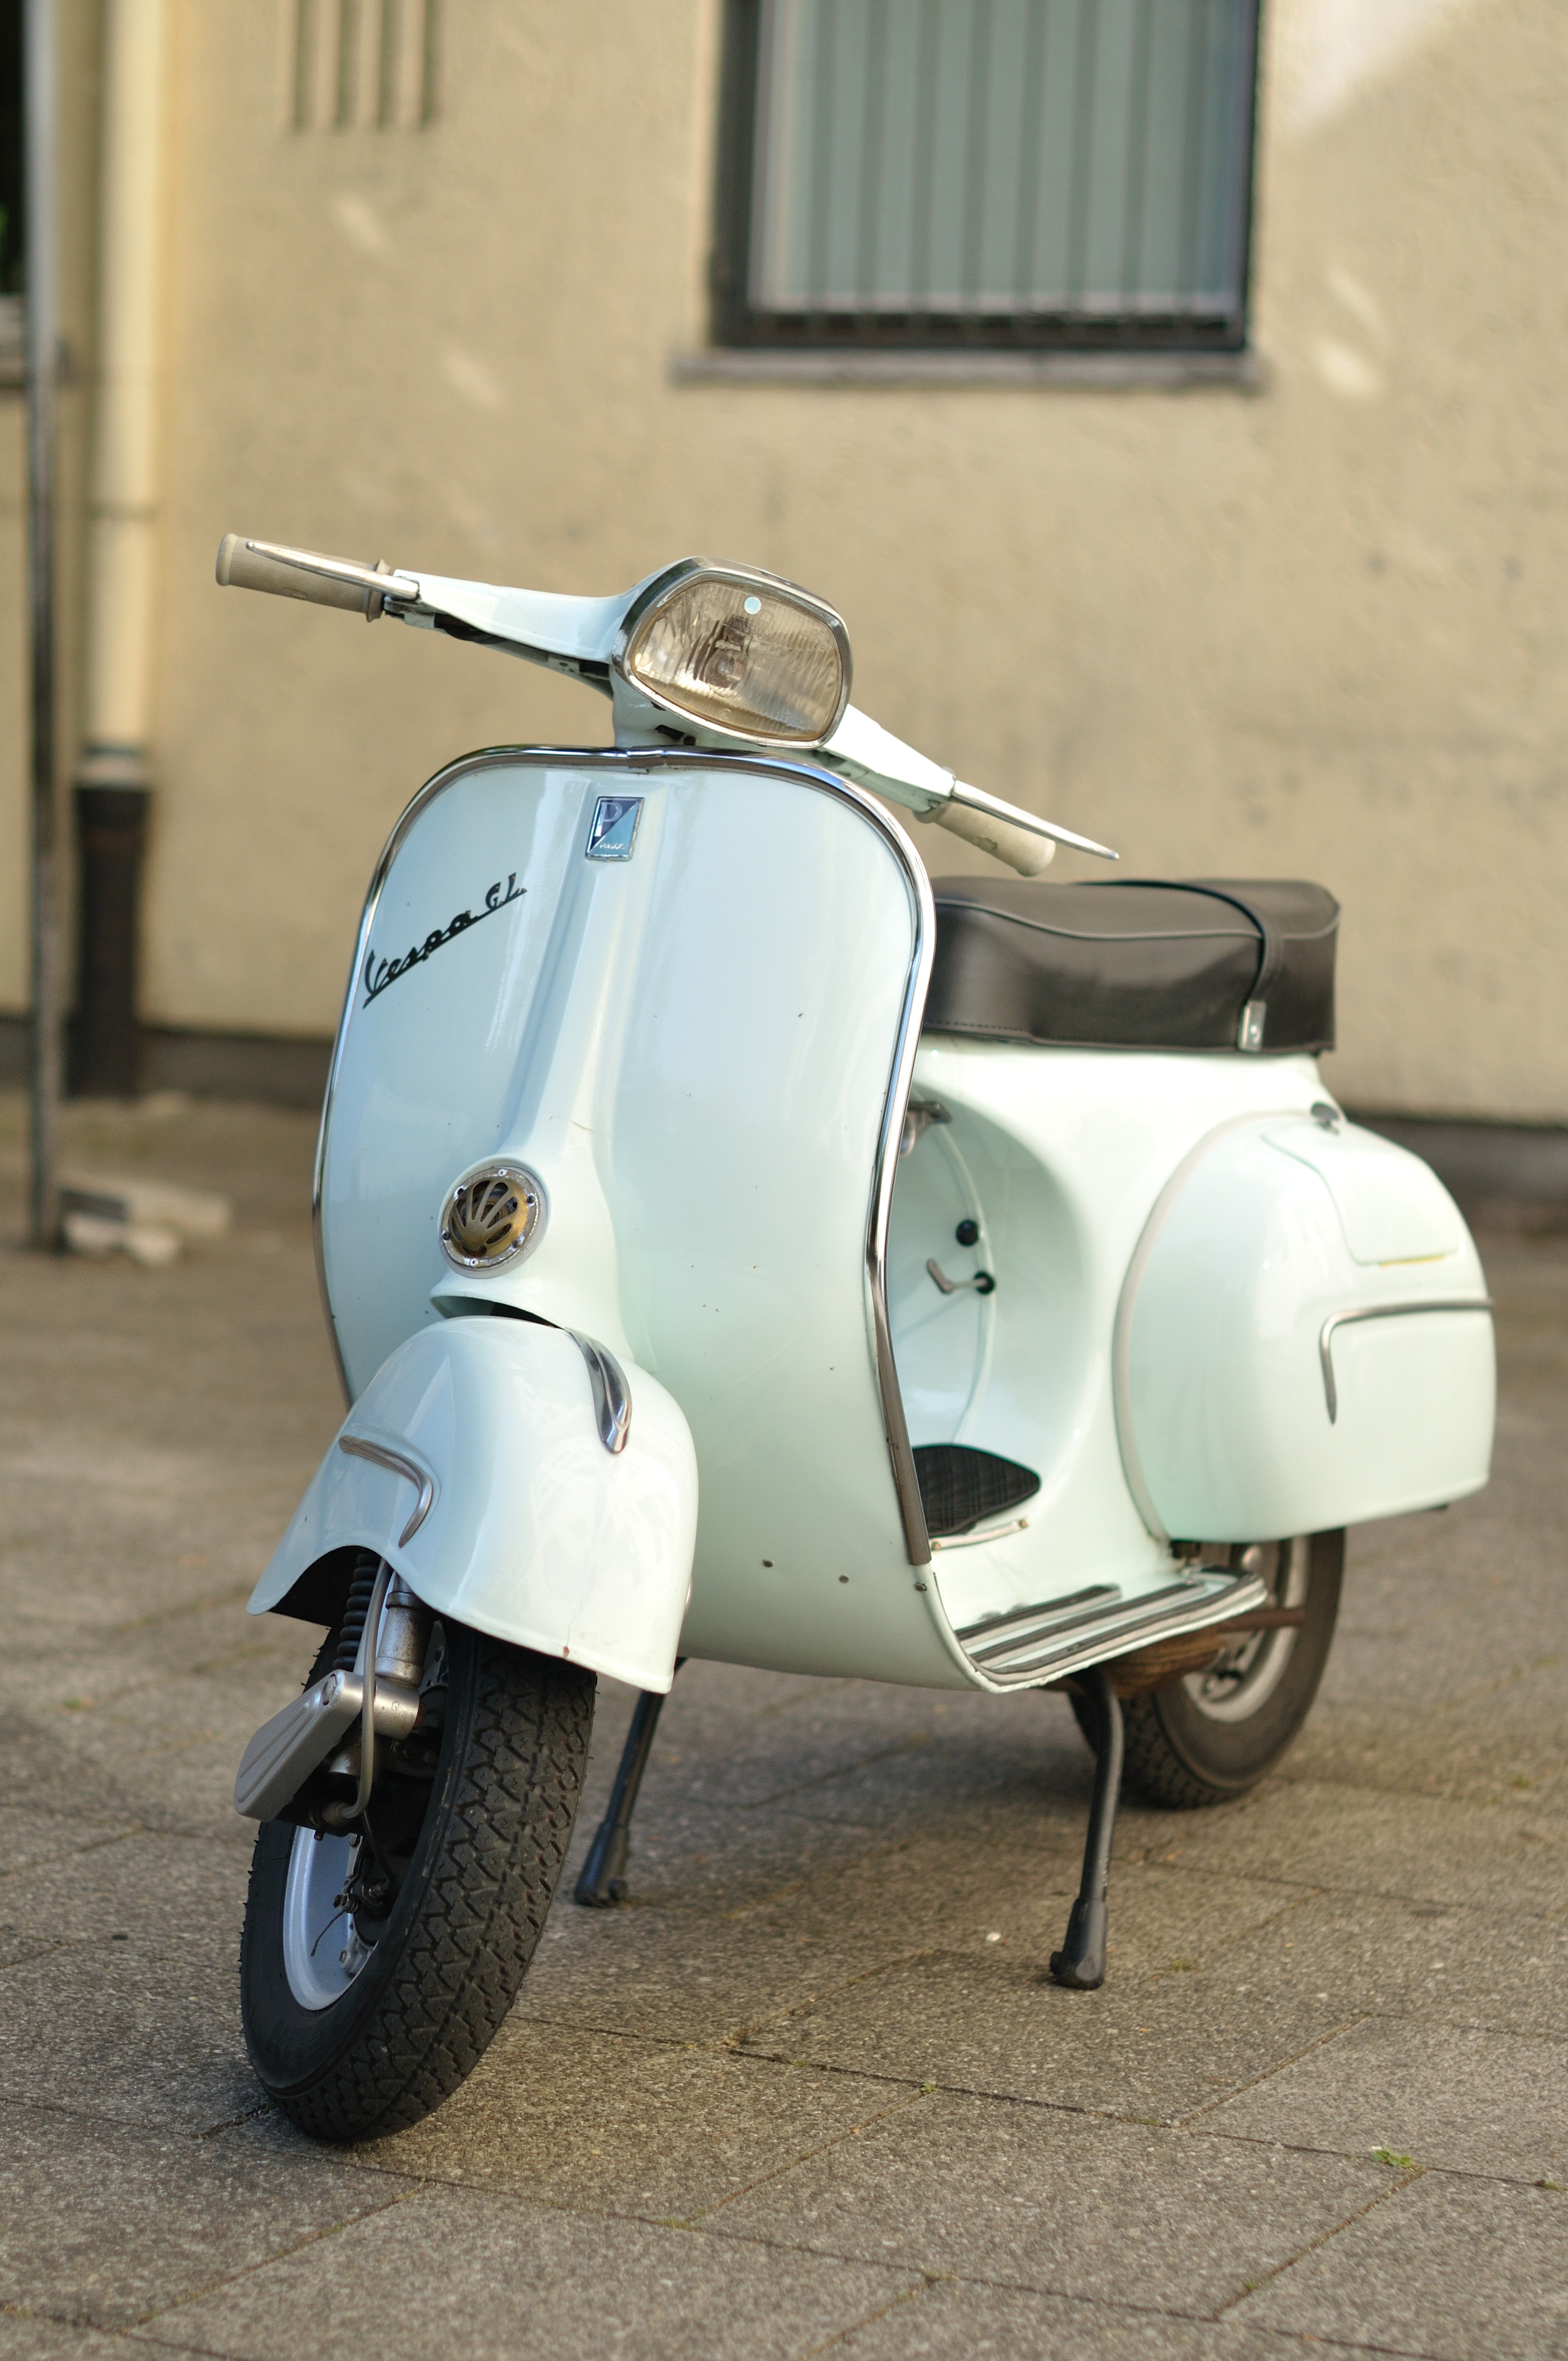 Vespa - Wikipedia, the free encyclopediavespa